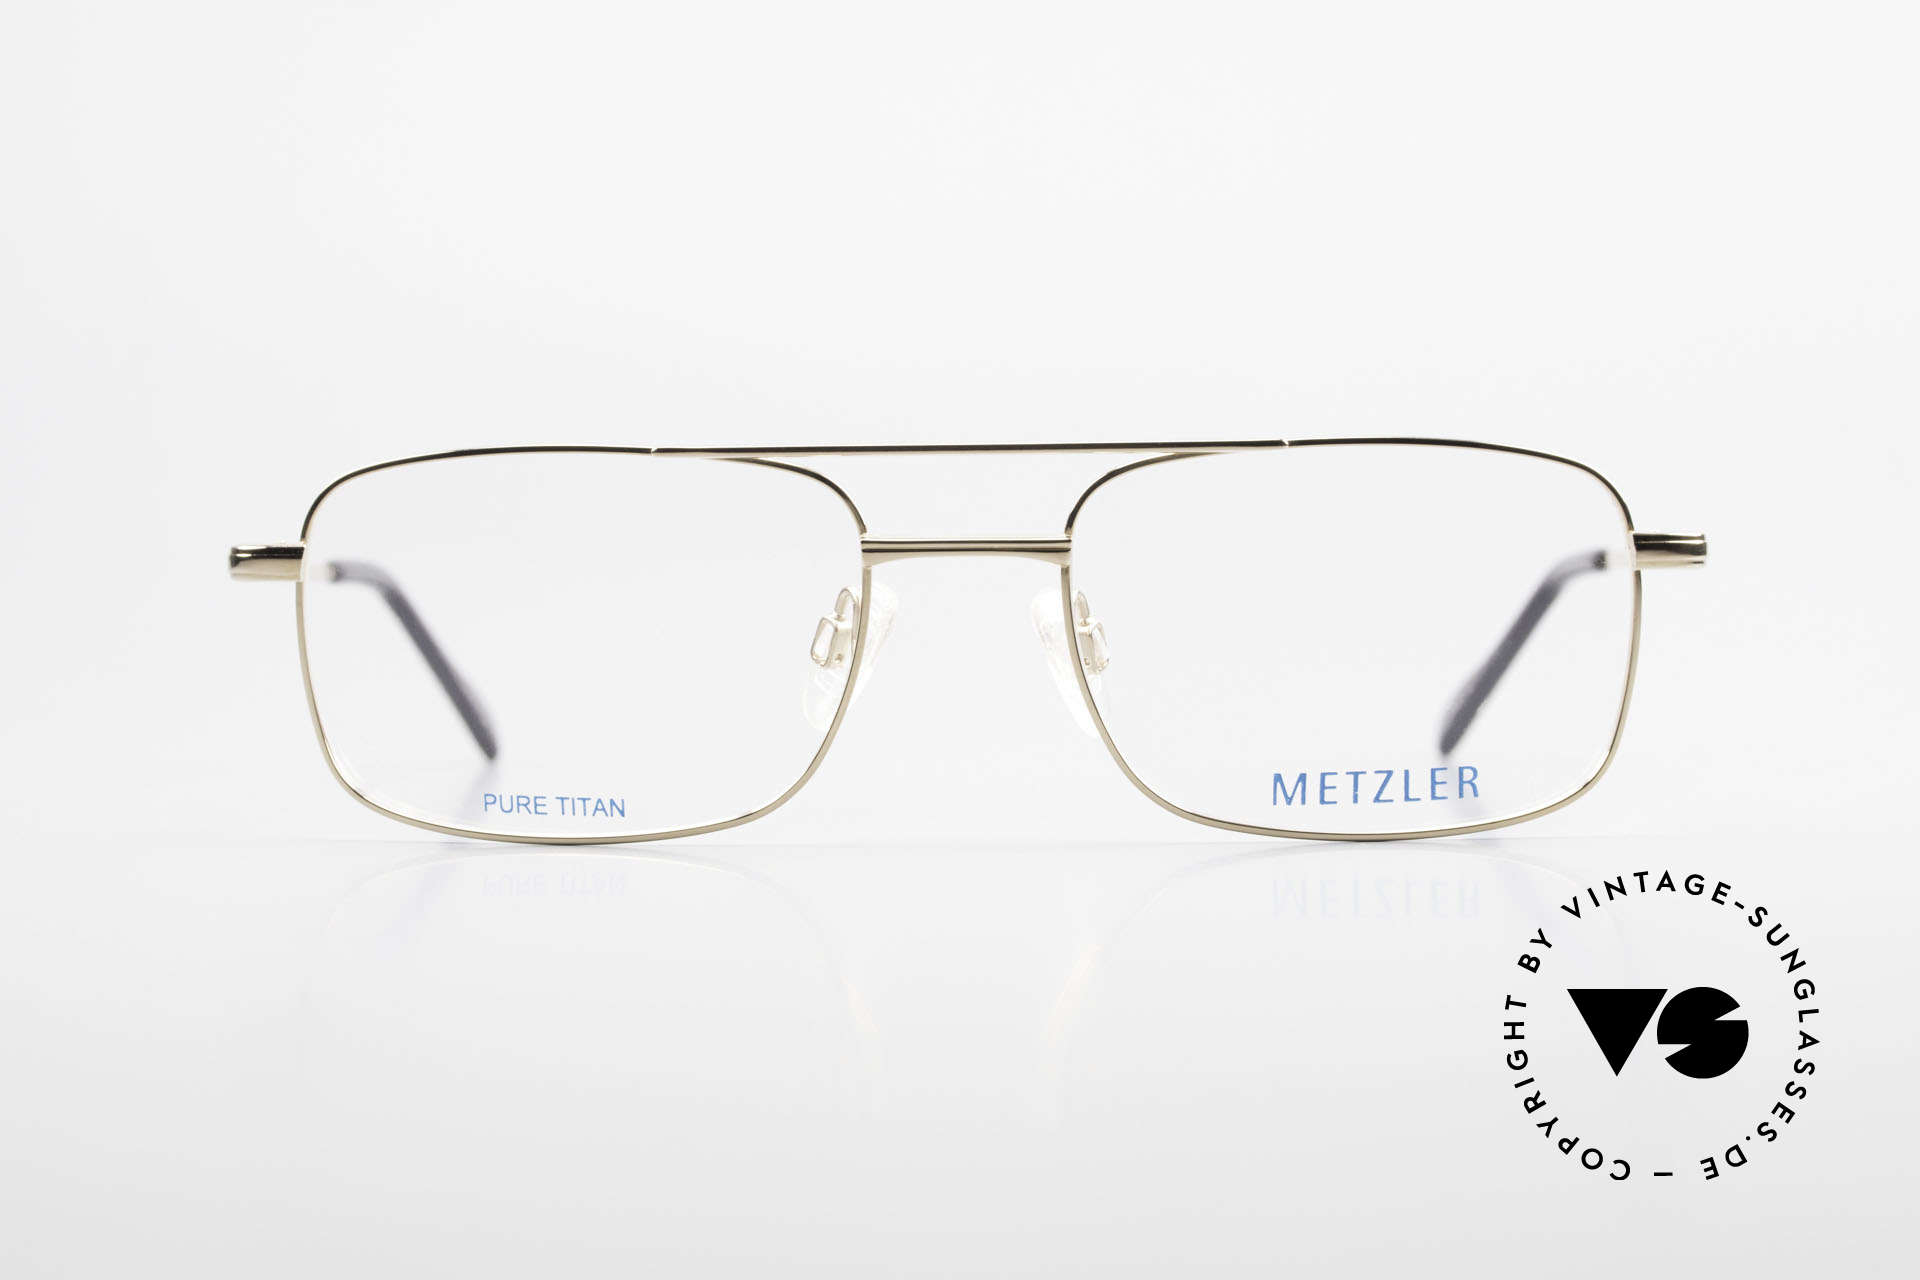 Metzler 1680 90's Titan Frame Gold Plated, vintage men's glasses by Metzler from the early 90s, Made for Men